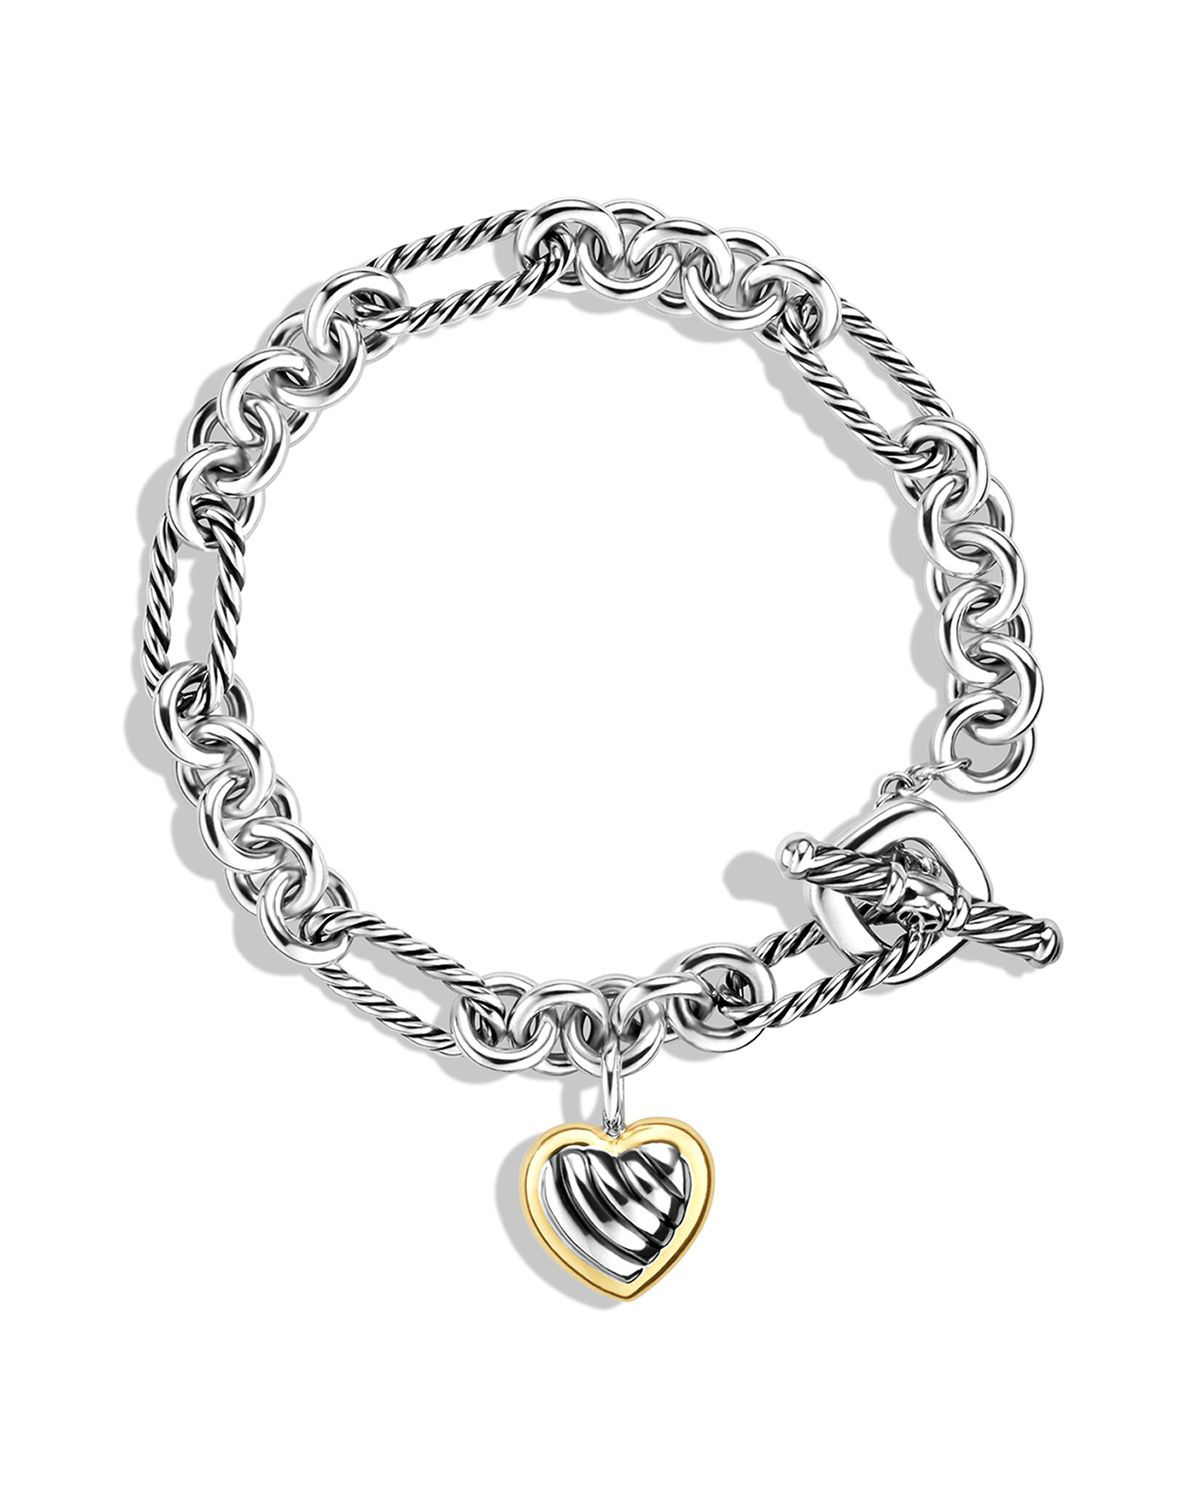 david yurman charm bracelet david yurman cable charm bracelet with gold in 7757